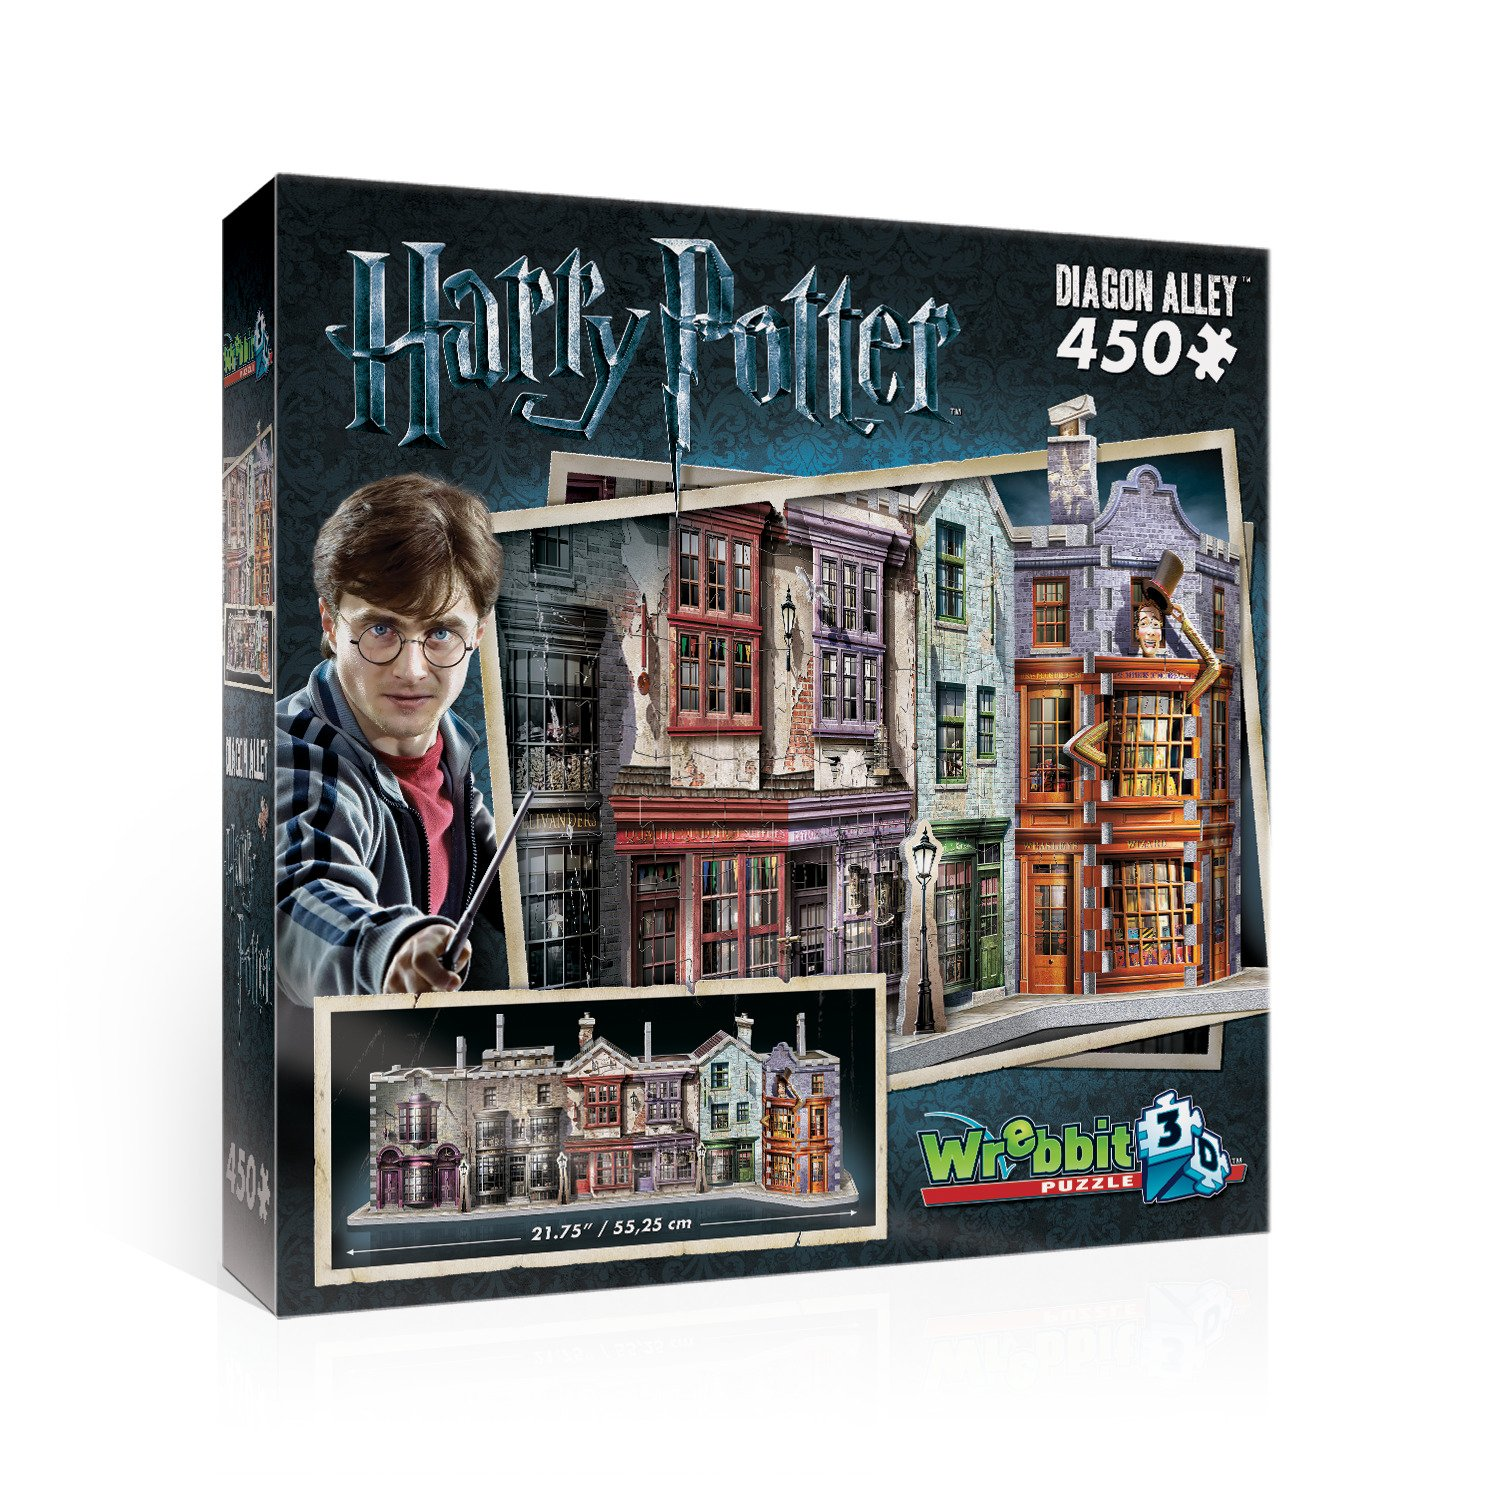 WREBBIT 3D Diagon Alley 3D Jigsaw Puzzle (450 Pieces) WREBBIT PUZZLES W3D-1010